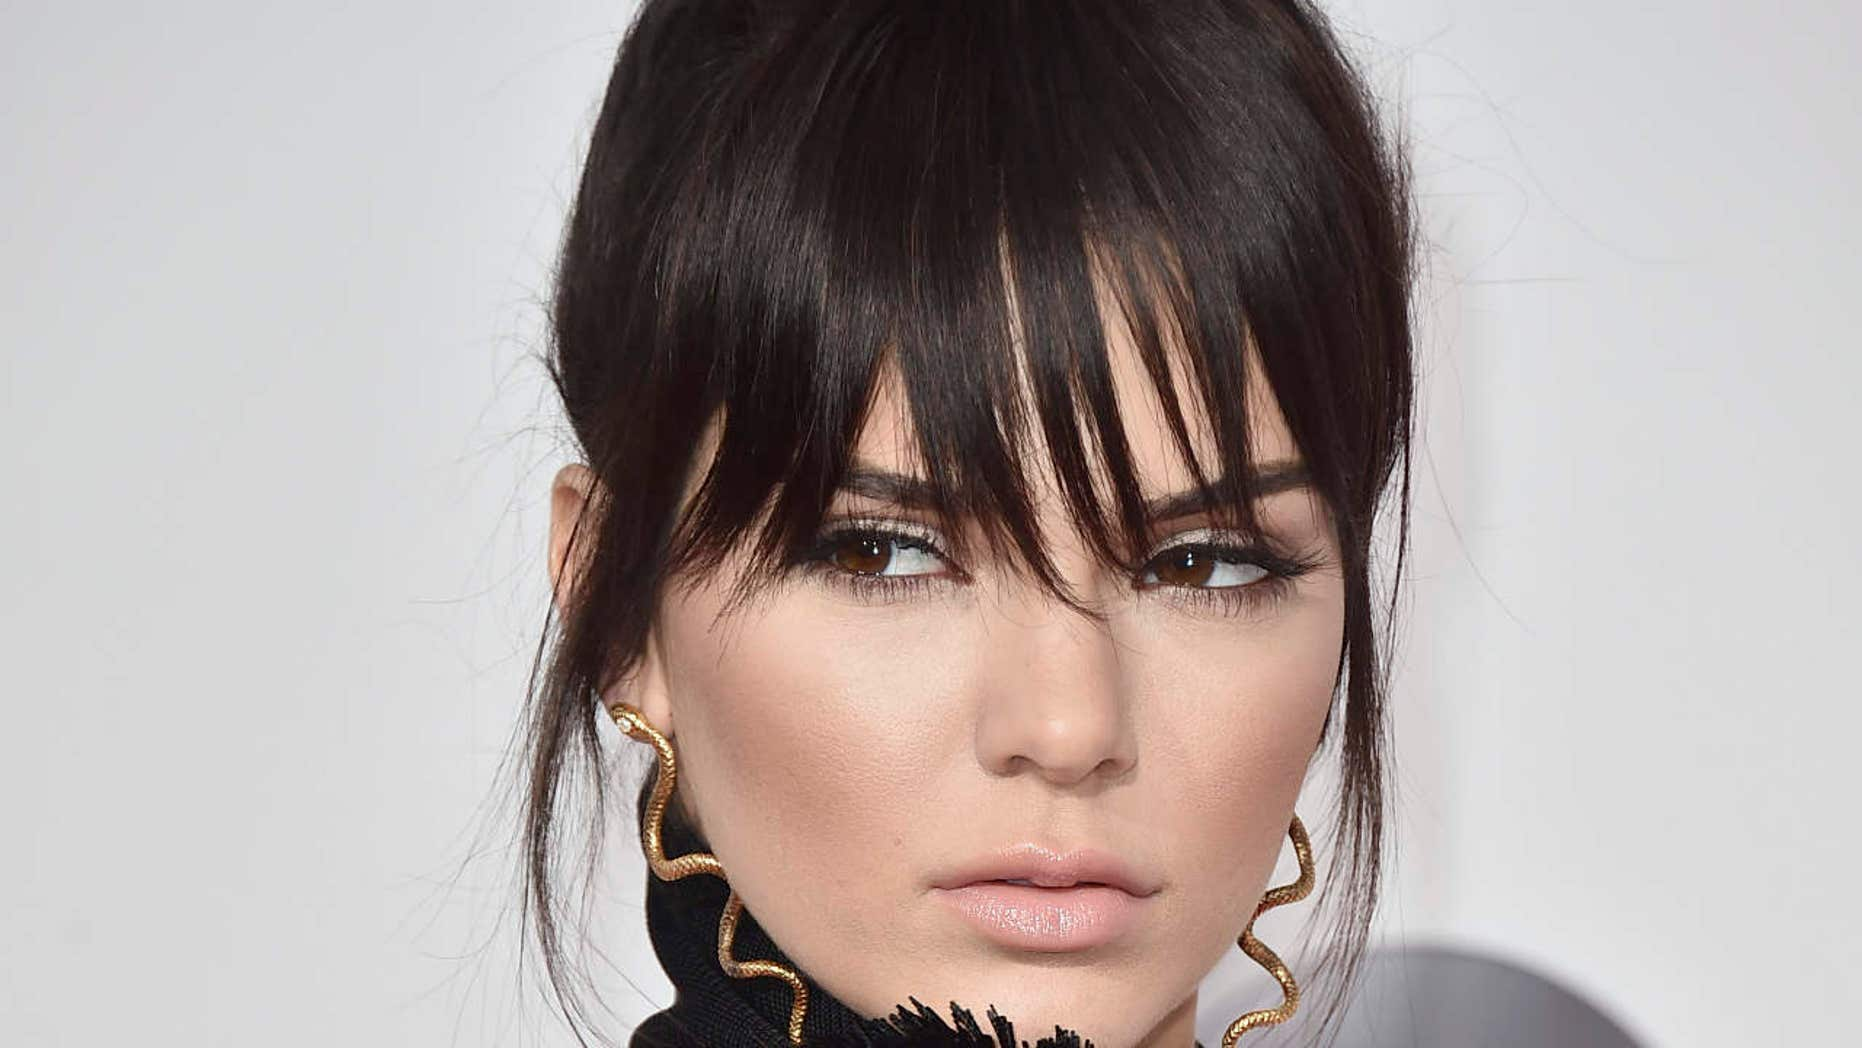 A new Pepsi commercial featuring Kendall Jenner as a soda-wielding protester garnered online backlash as some denounced the advertisement as appropriation for the Black Lives Matter movement.